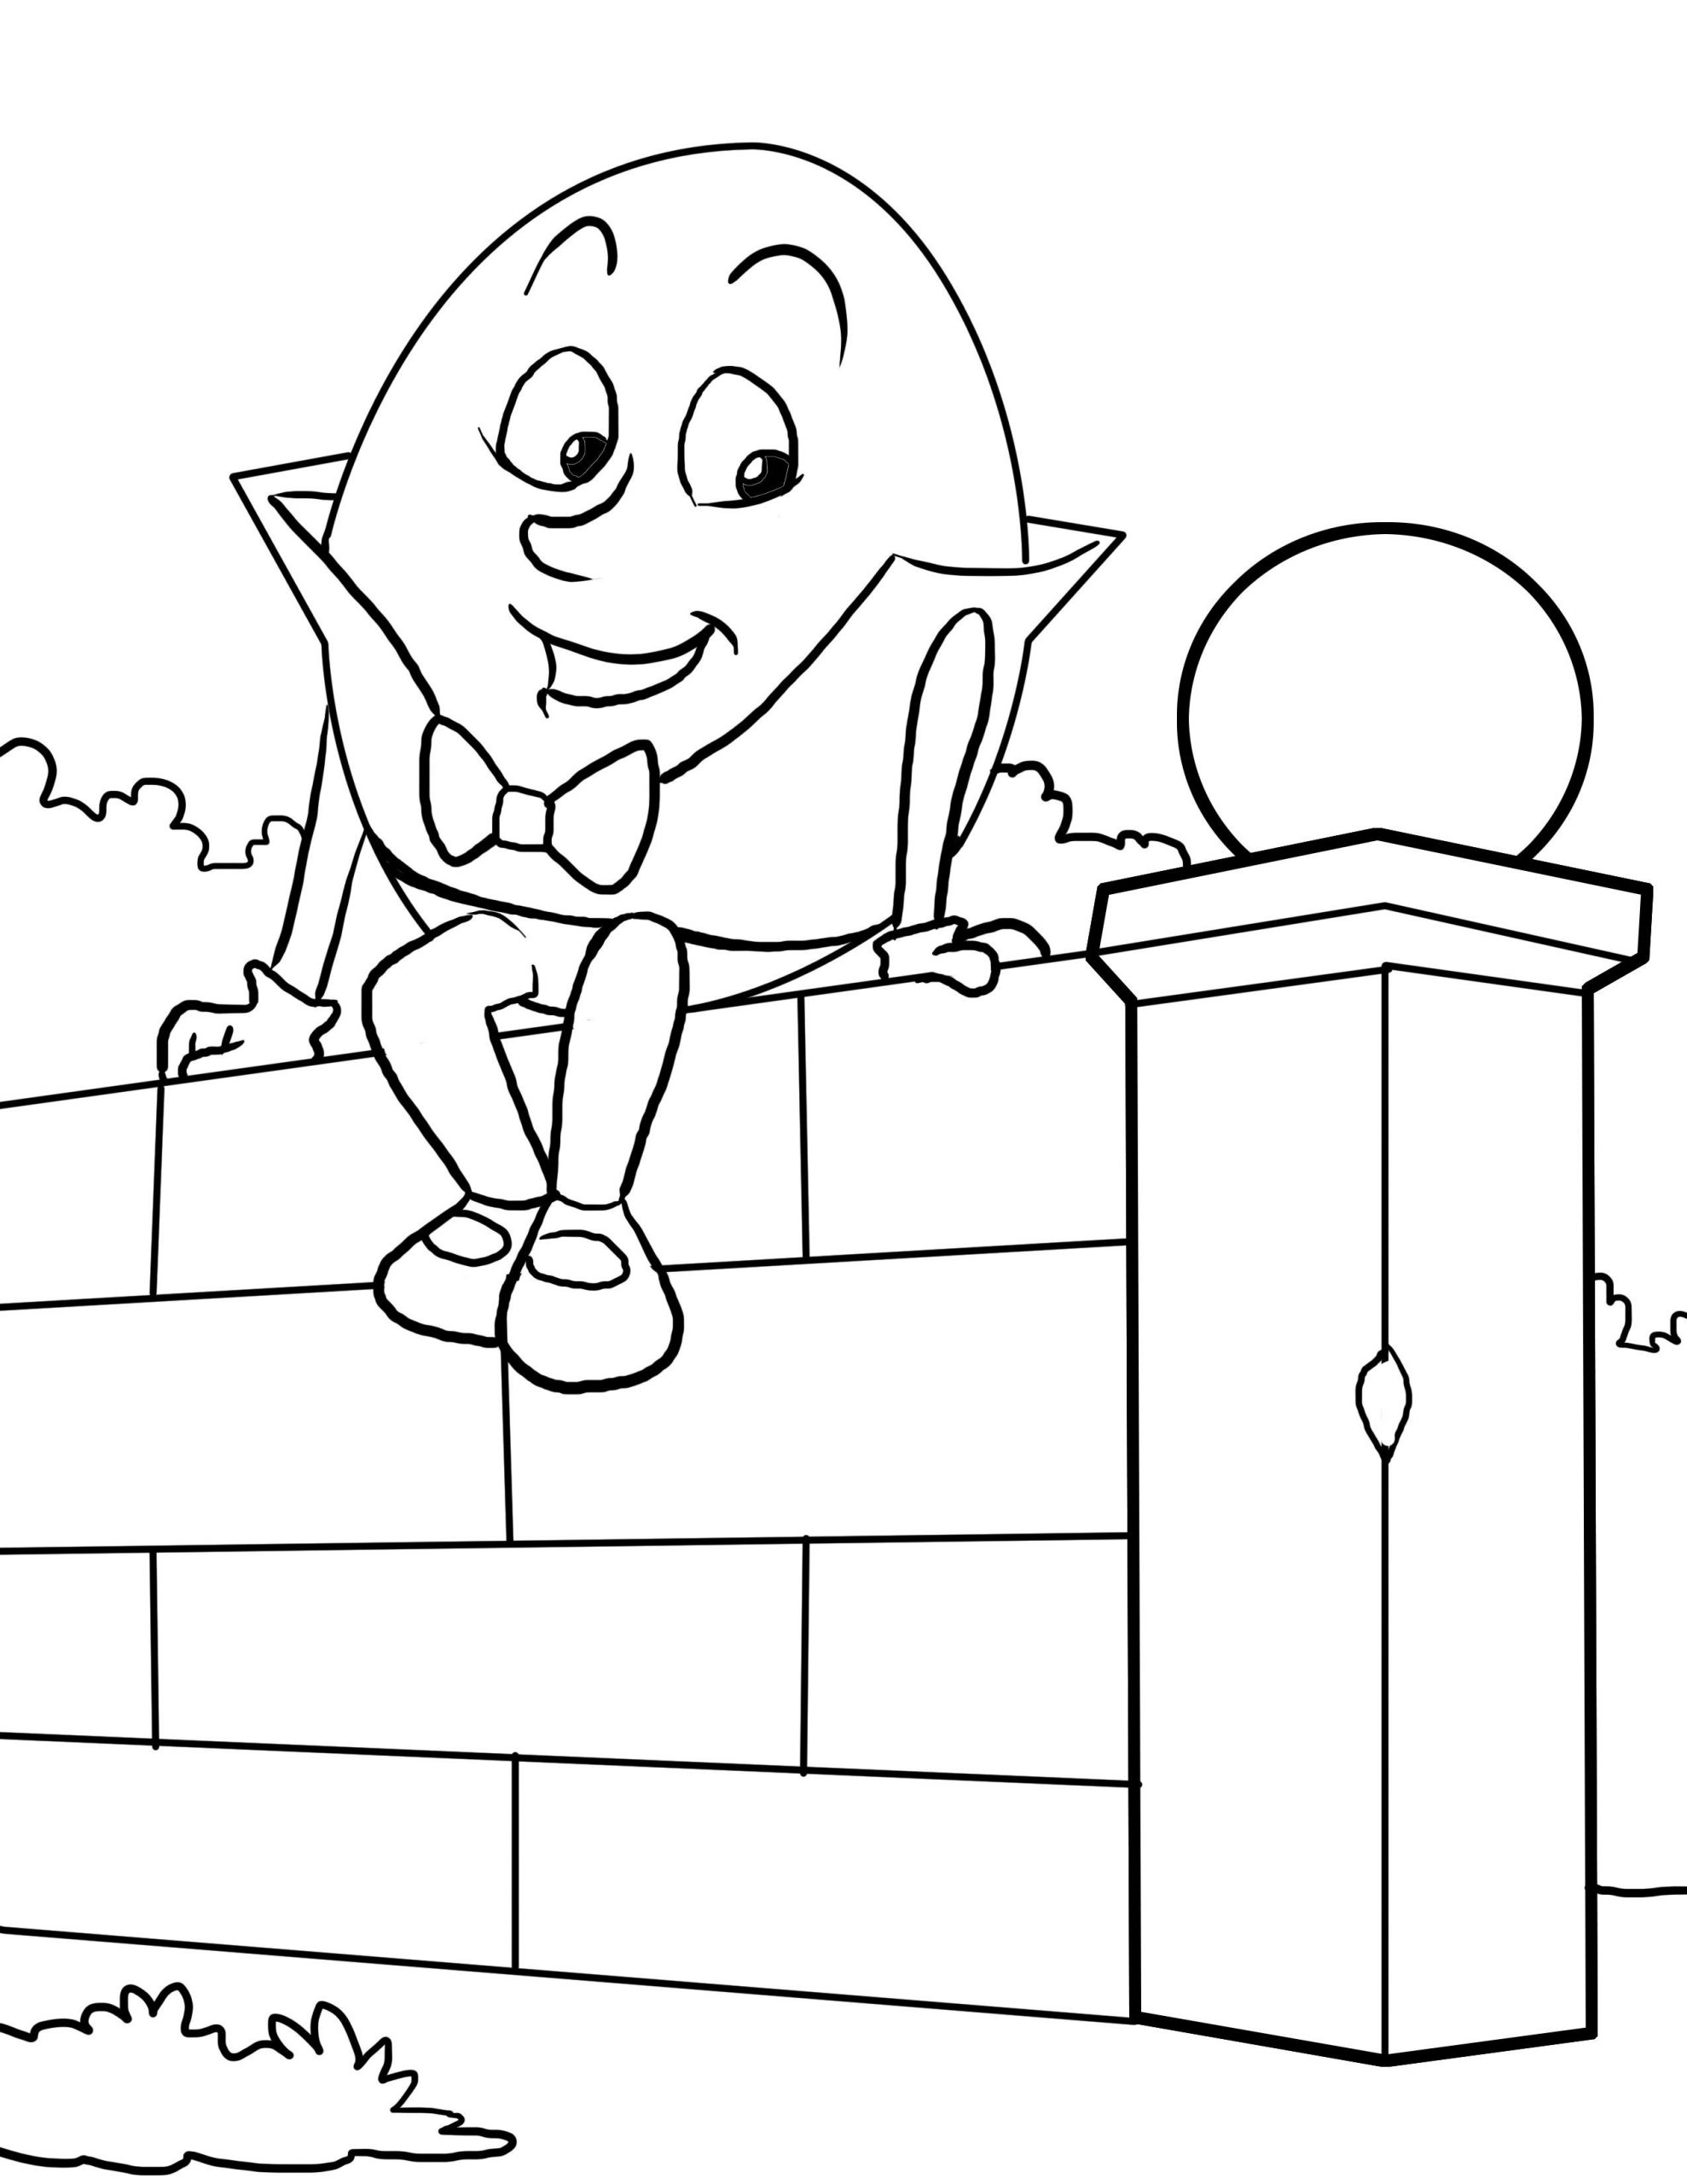 Humpty Dumpty Printable Book Humpty Dumpty Coloring Worksheet for Nursery Printable